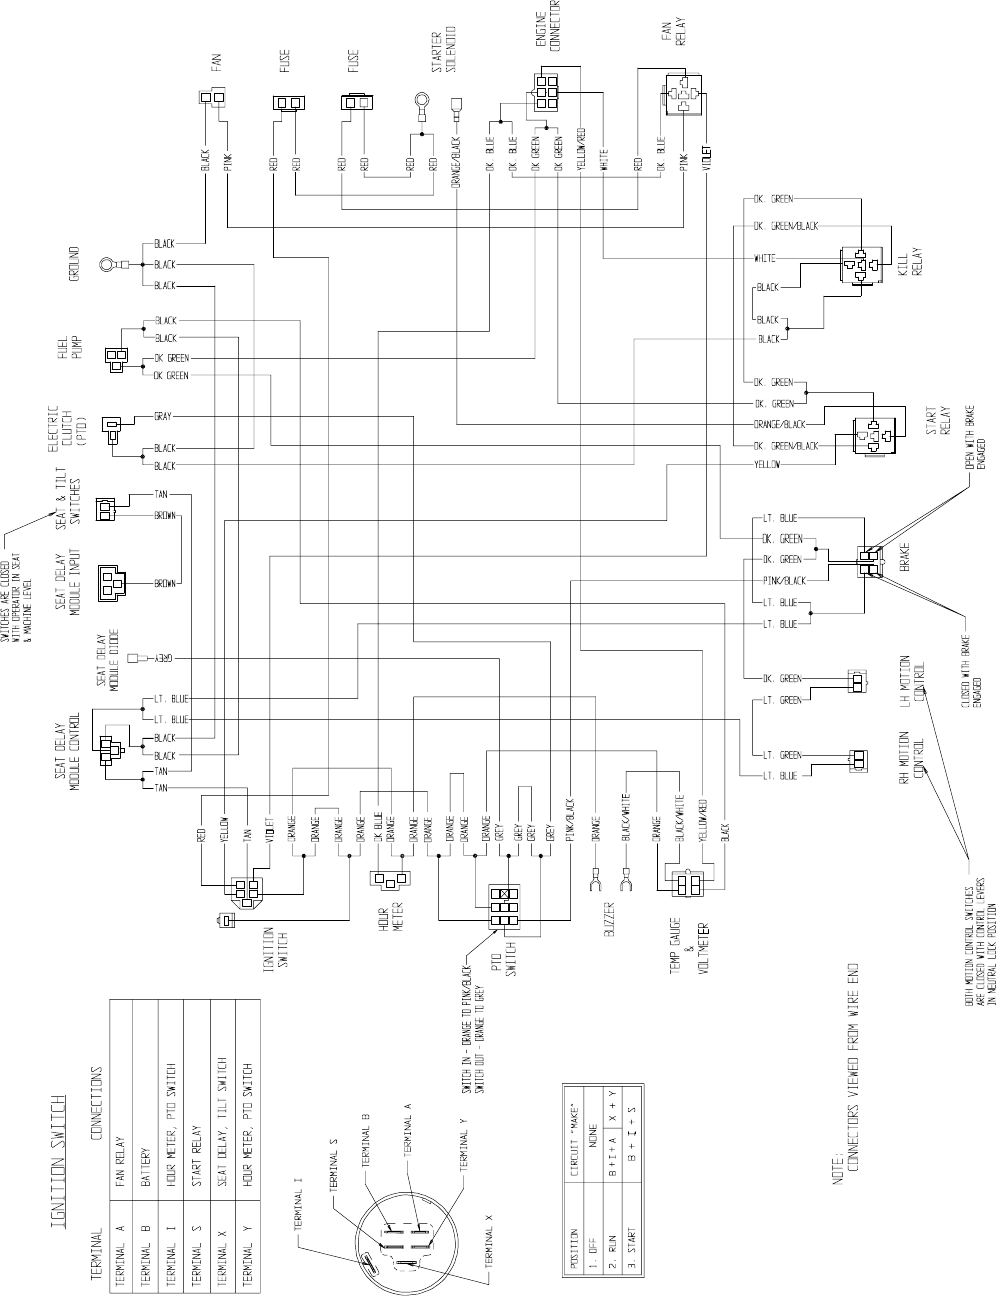 Lazerv Z Pto Wiring Diagram 27 Images Ex Mark Lazer Switch Fe0094d5 B49c 4e15 9446 11a96067f628 Bg35 Hd Wallpapers For Exmark 3dhdhddesignf Tk